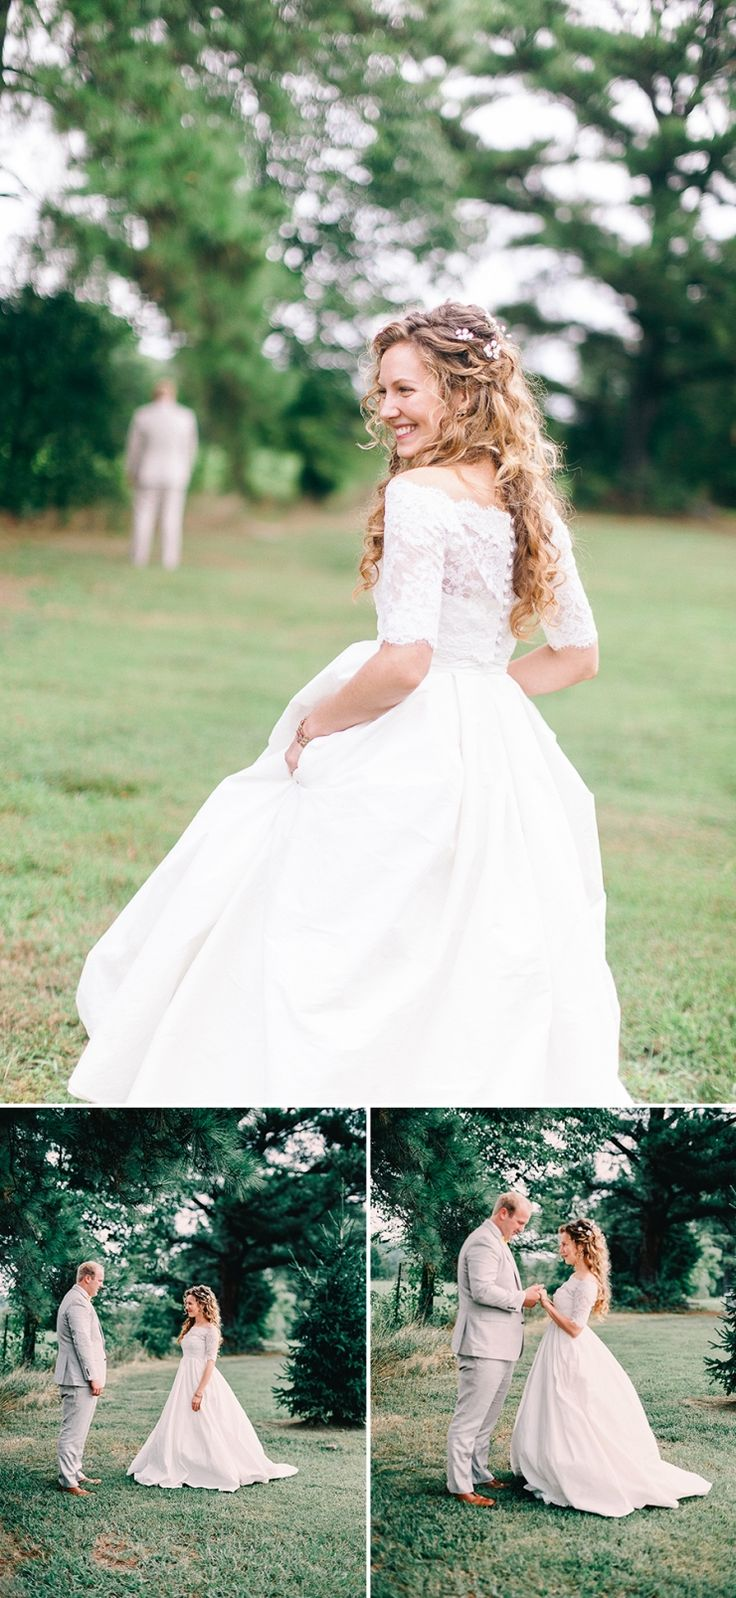 Featured on The Bridal Theory! Our quaint country wedding. Antebellum style off the shoulder alencon lace wedding dress- chiffon ballgown with empire waist.